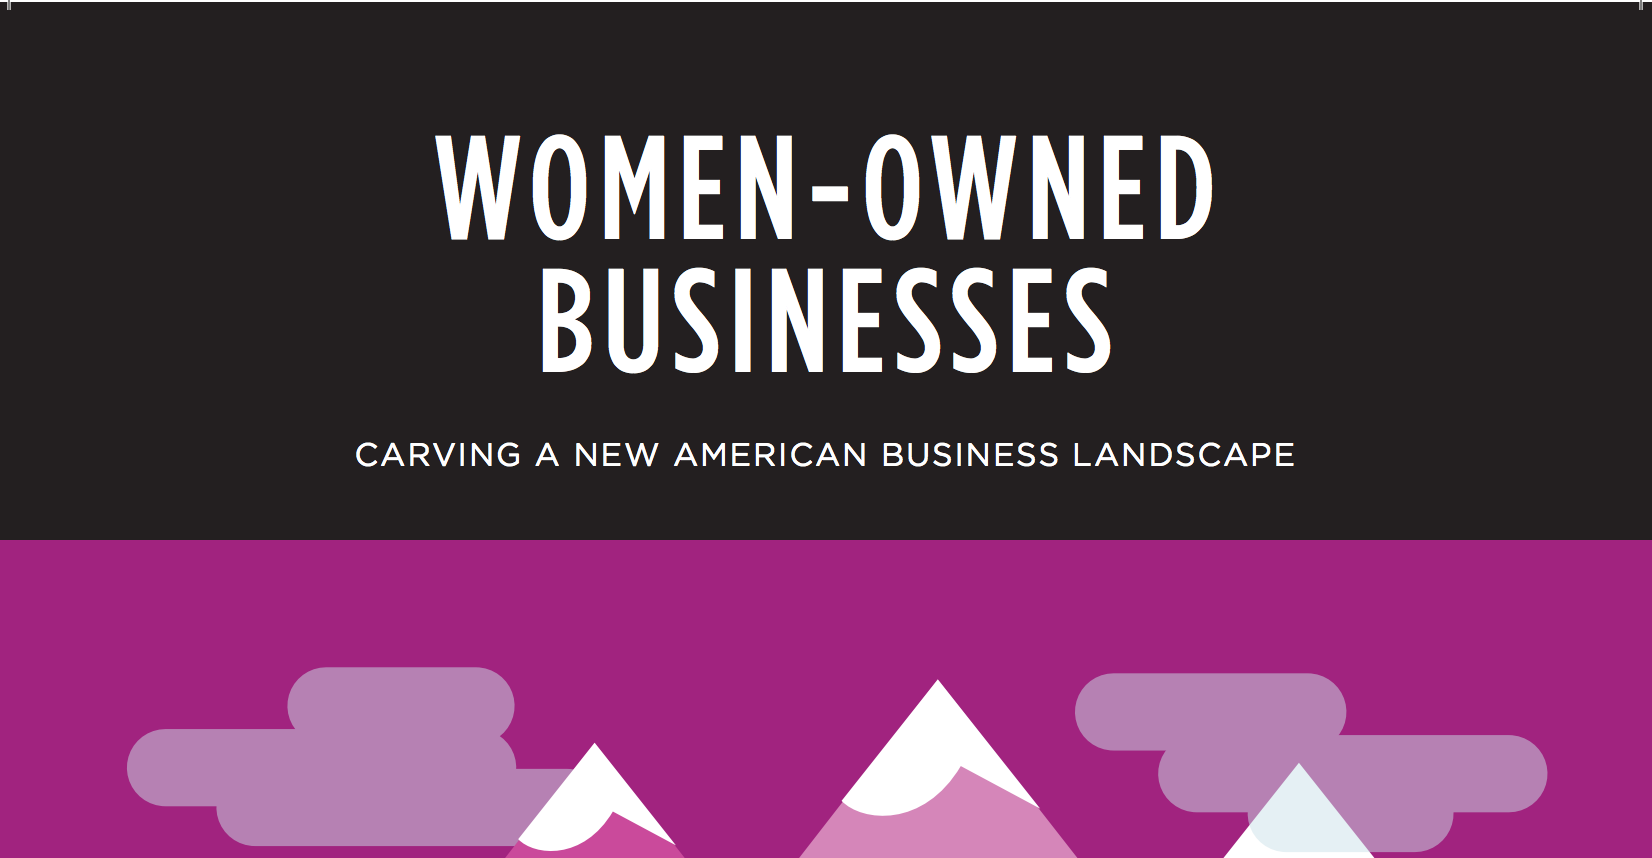 Women-Owned Businesses: Carving a New American Business Landscape